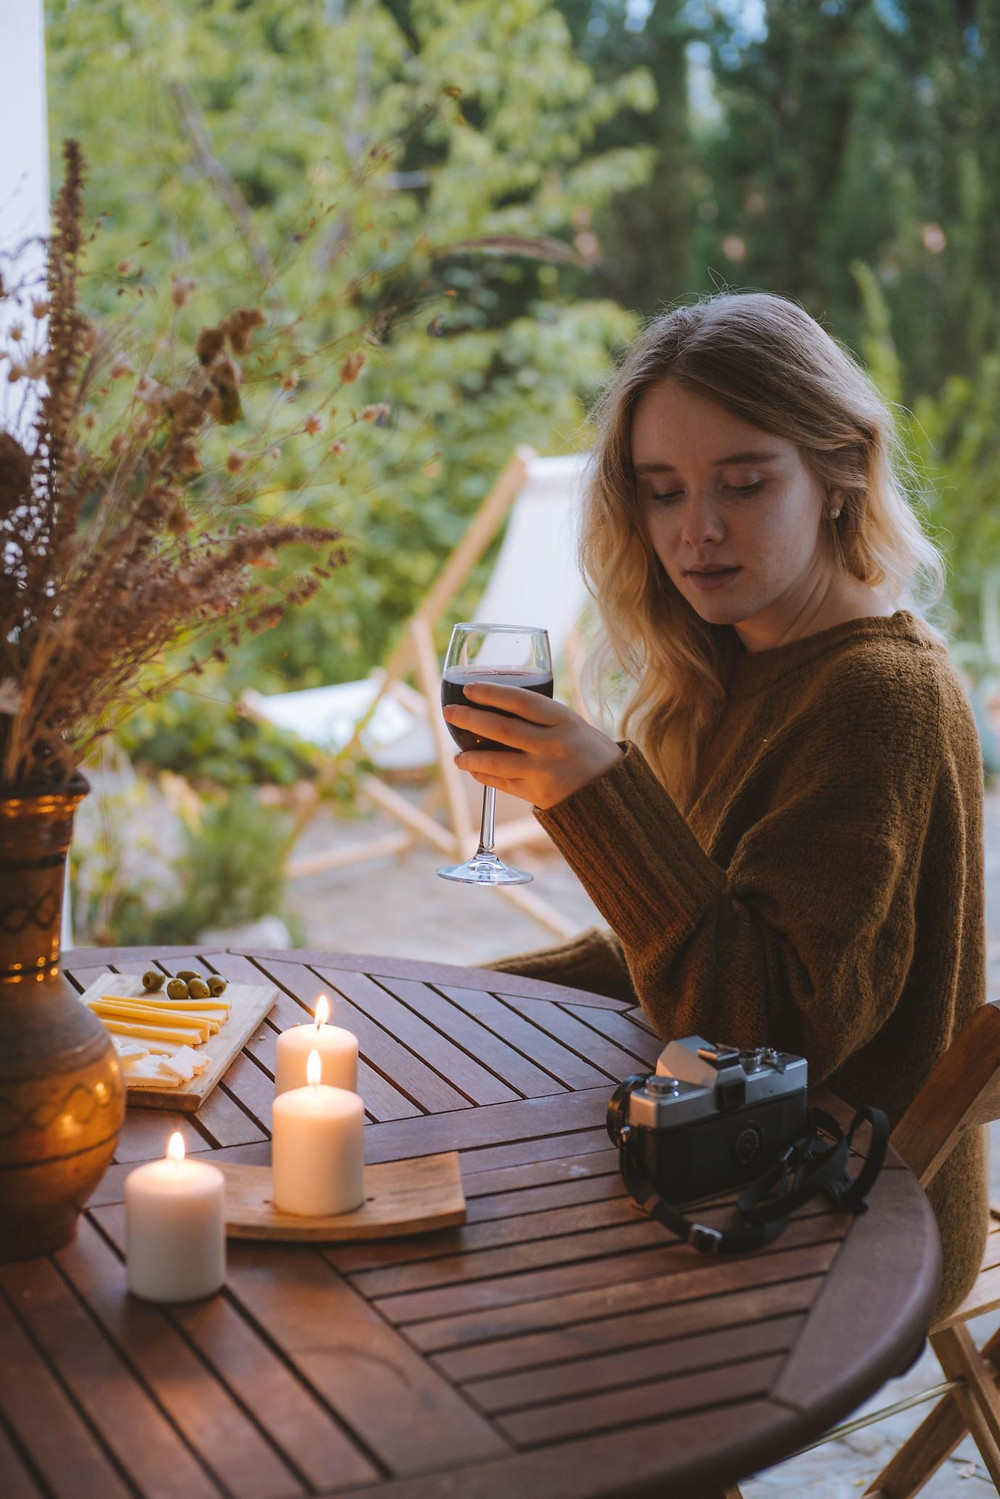 A girl drinking wine in the yard